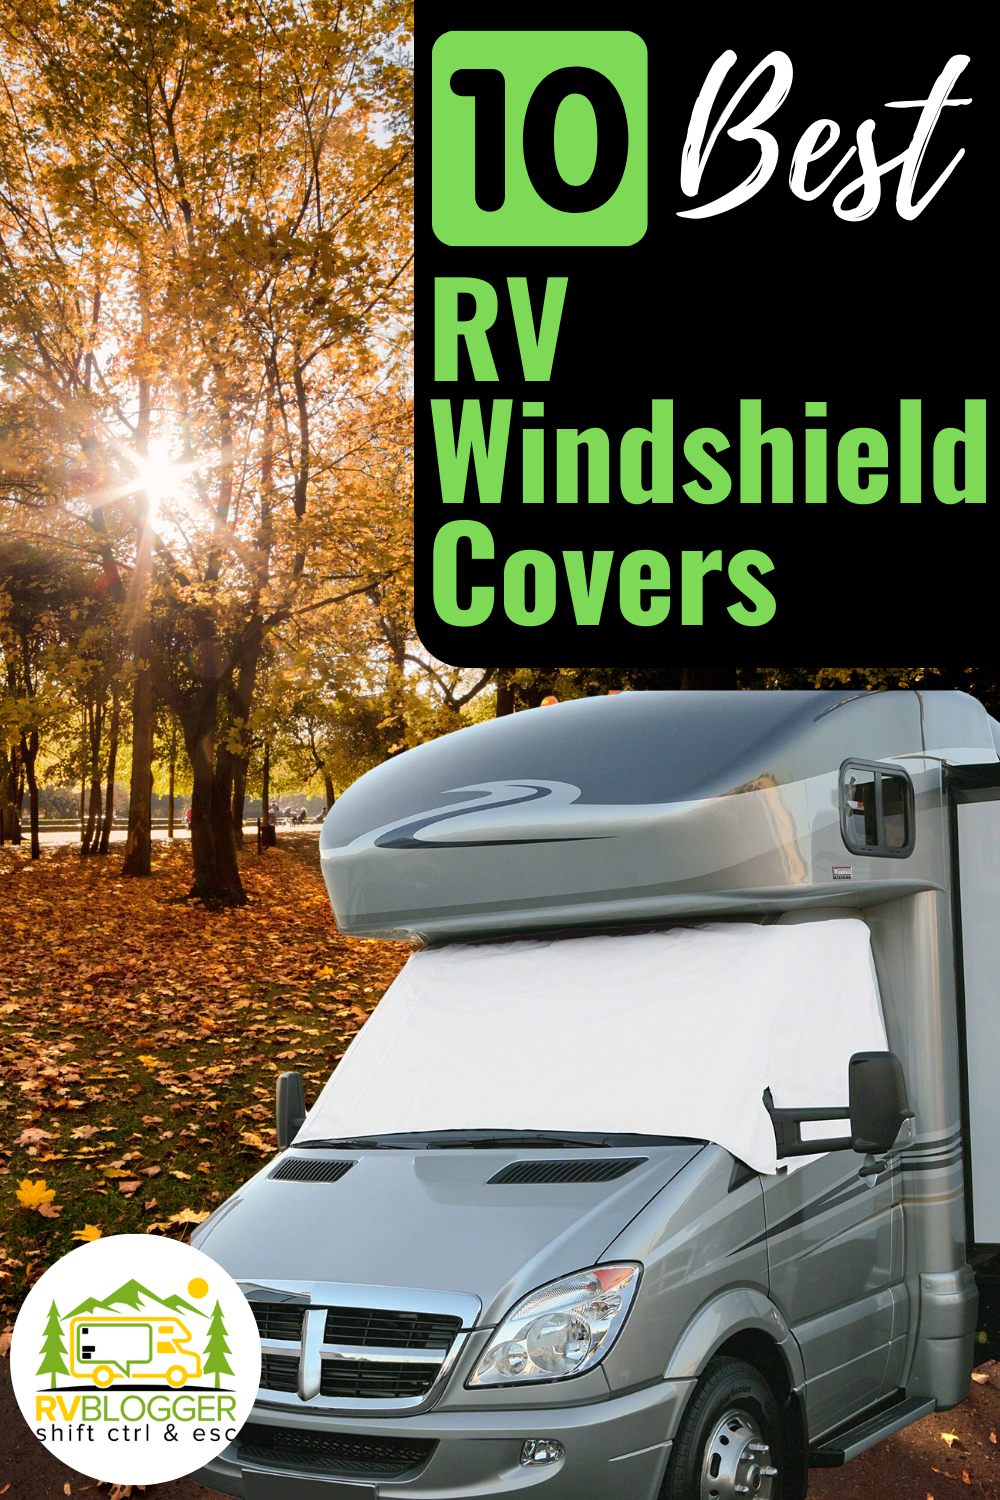 10 Best Rv Windshield Covers 2020 Reviews Rvblogger In 2020 Windshield Cover Rv Windshield